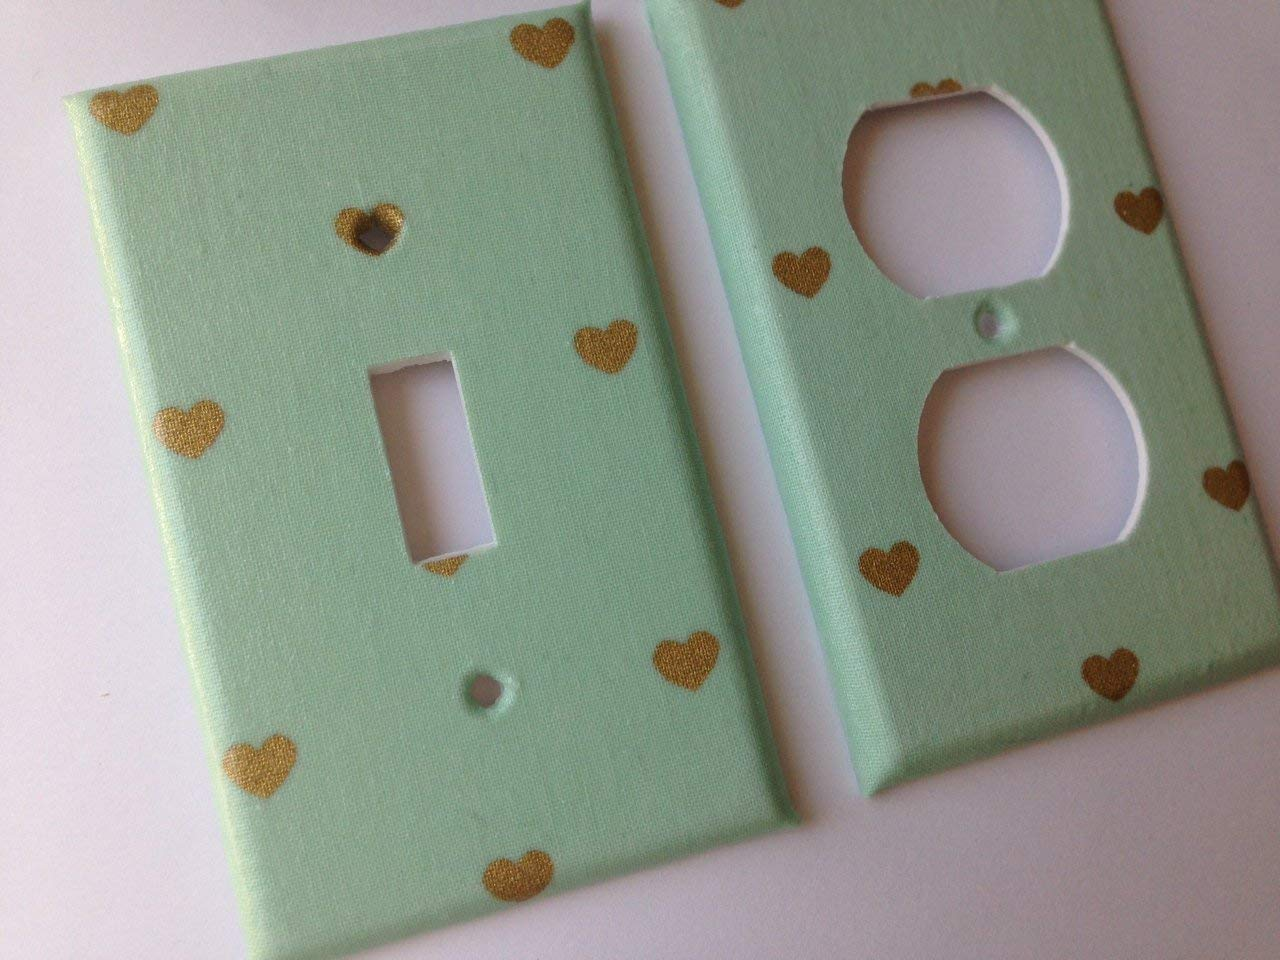 Mint Max 43% OFF And Our shop OFFers the best service Metallic Gold Heart Light St Various Switch Cover Plate